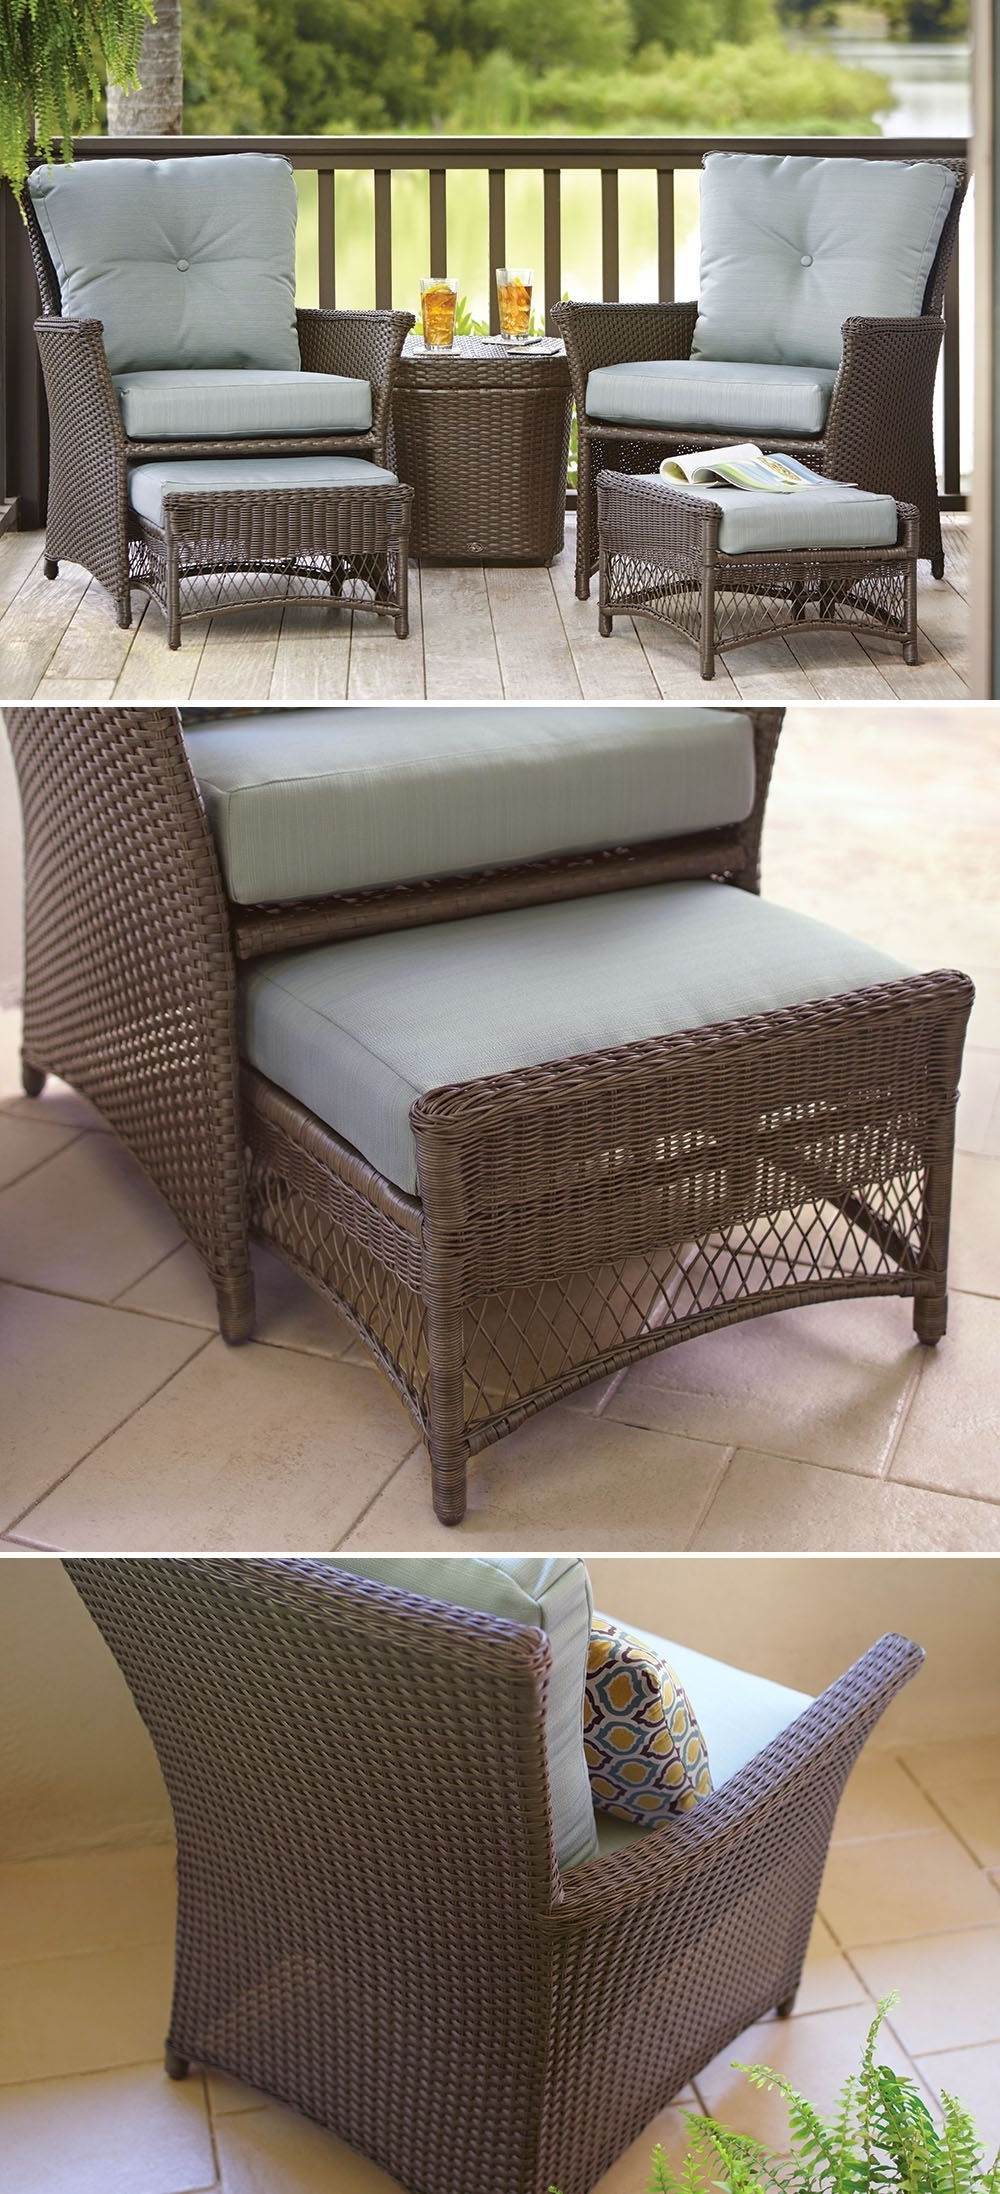 This Affordable Patio Set Is Just The Right Size For Your Small Inside Preferred Patio Conversation Sets With Ottoman (View 18 of 20)